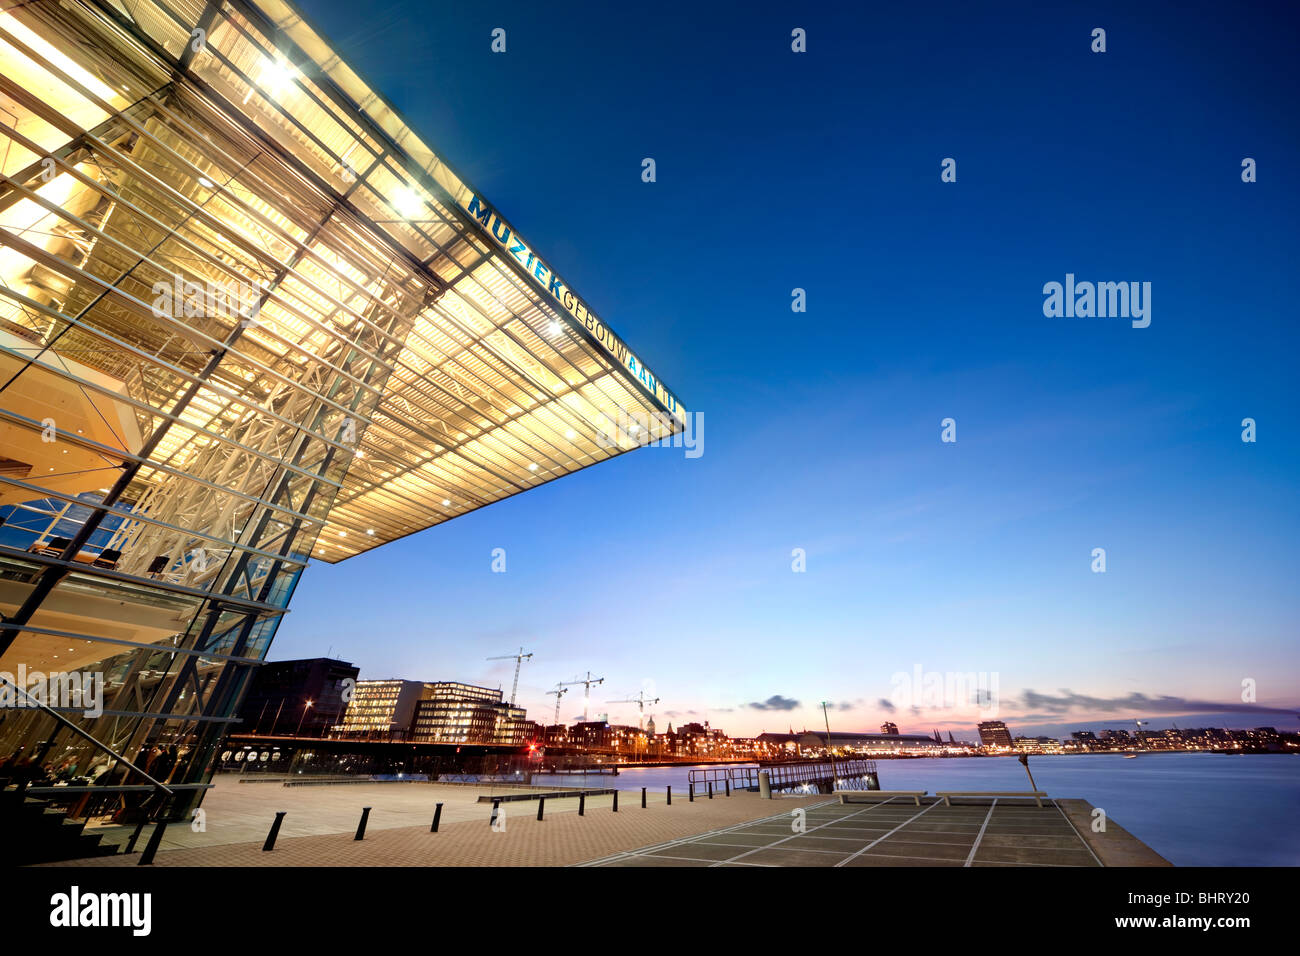 Amsterdam Music Building at the IJ and the Star Ferry Restaurant at dusk with views towards the Central Station - Stock Image